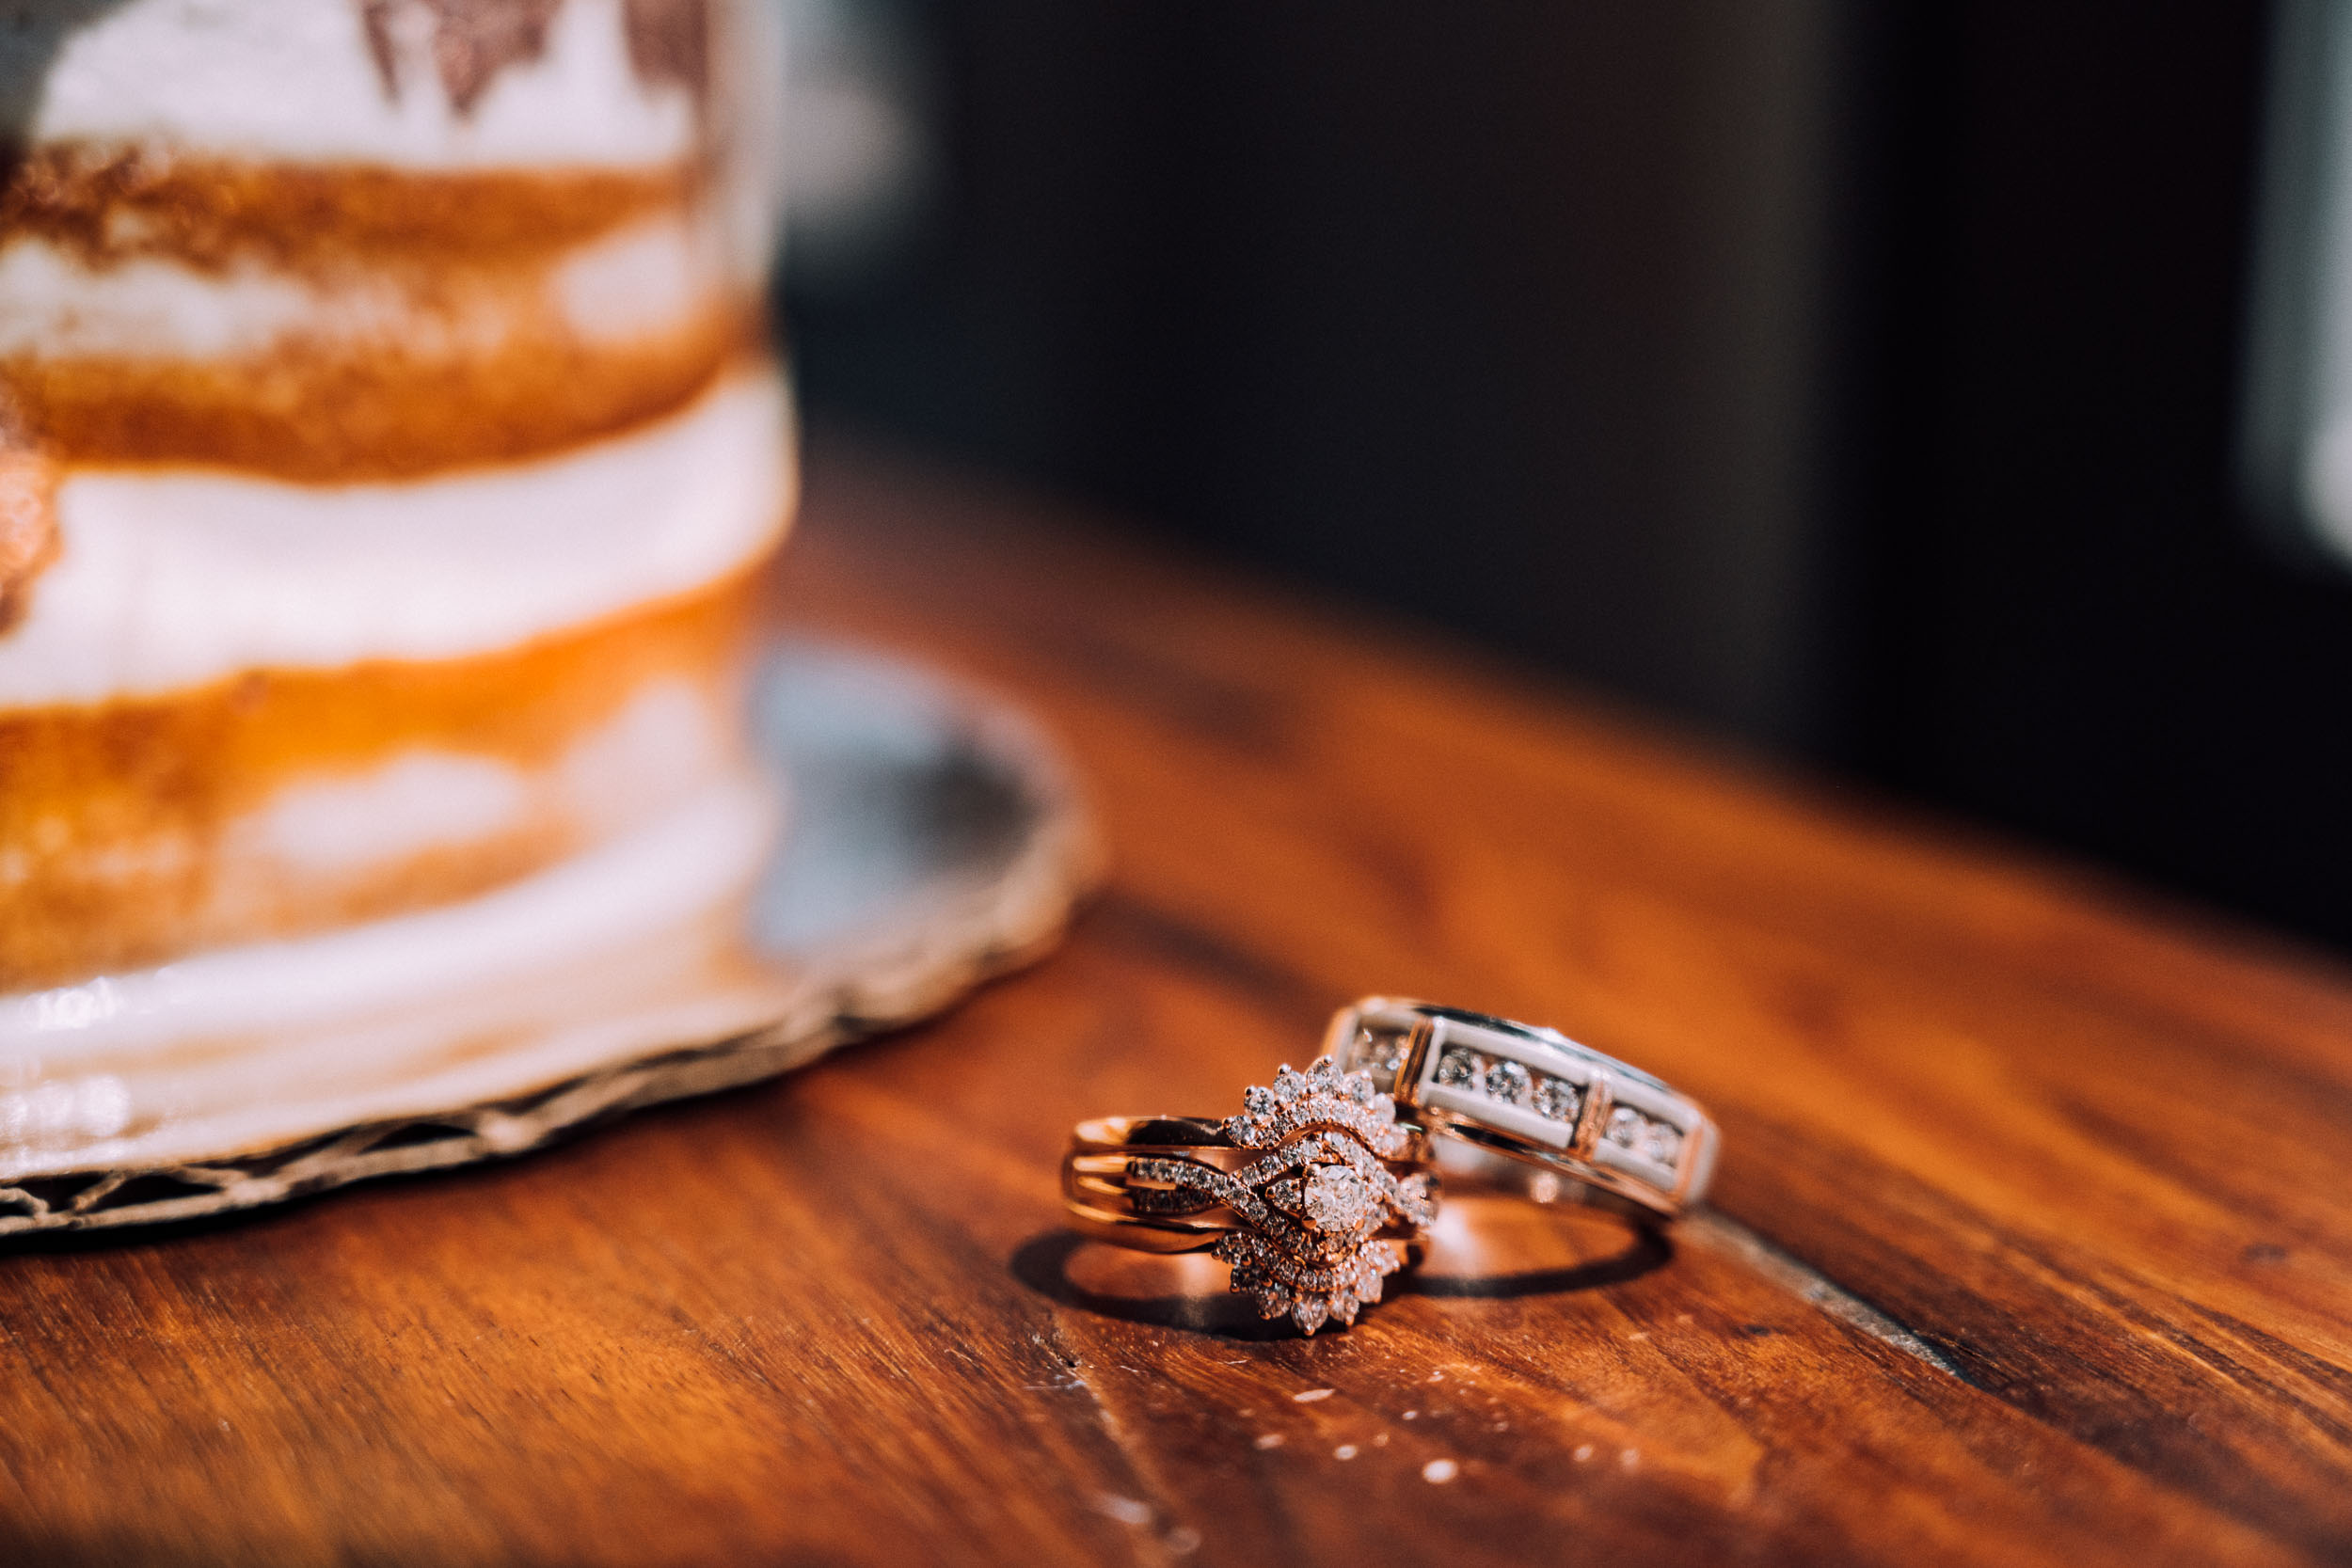 Chicago Elopement at Lillie's Q shot by Captured by Bianca 2019